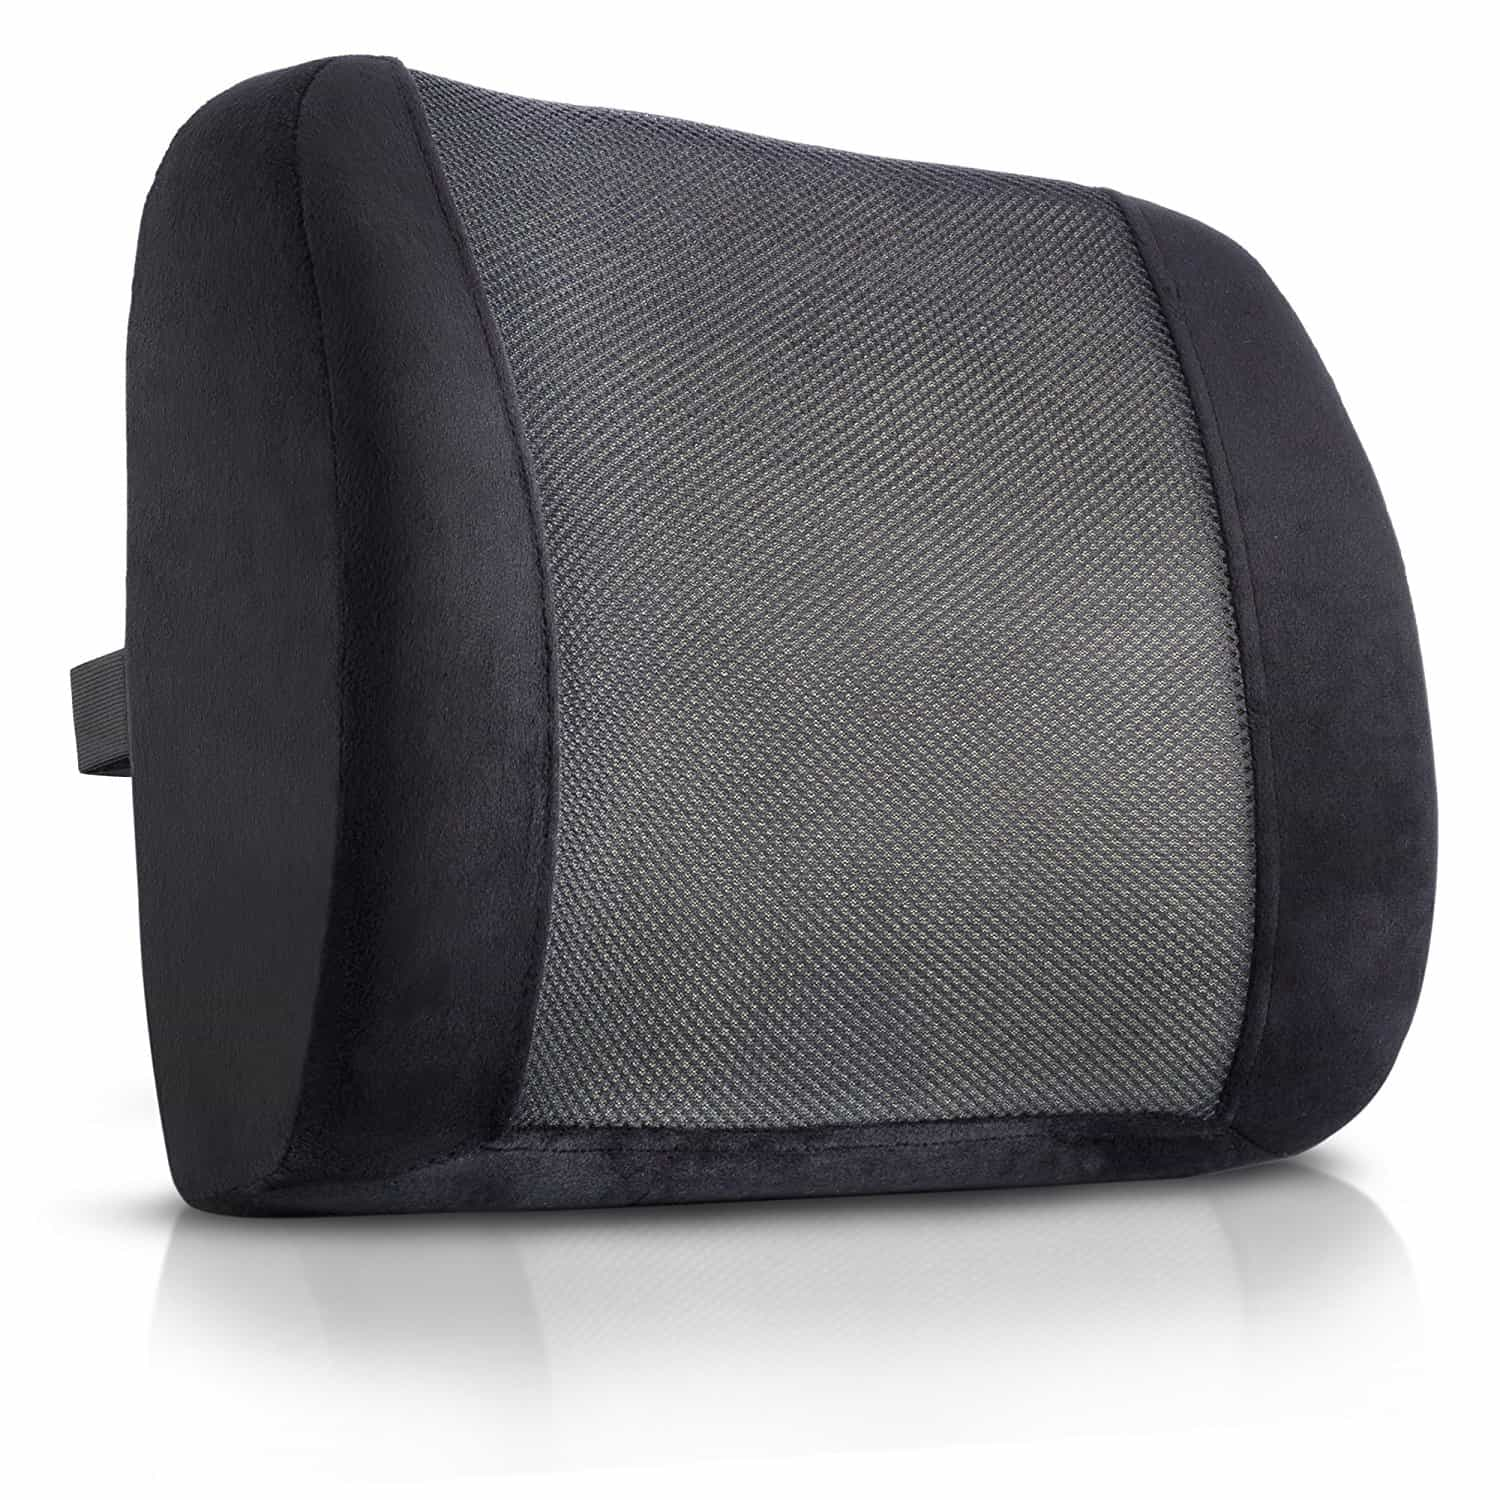 chair lumbar support fiberglass shell best for car 2018 lower back pain